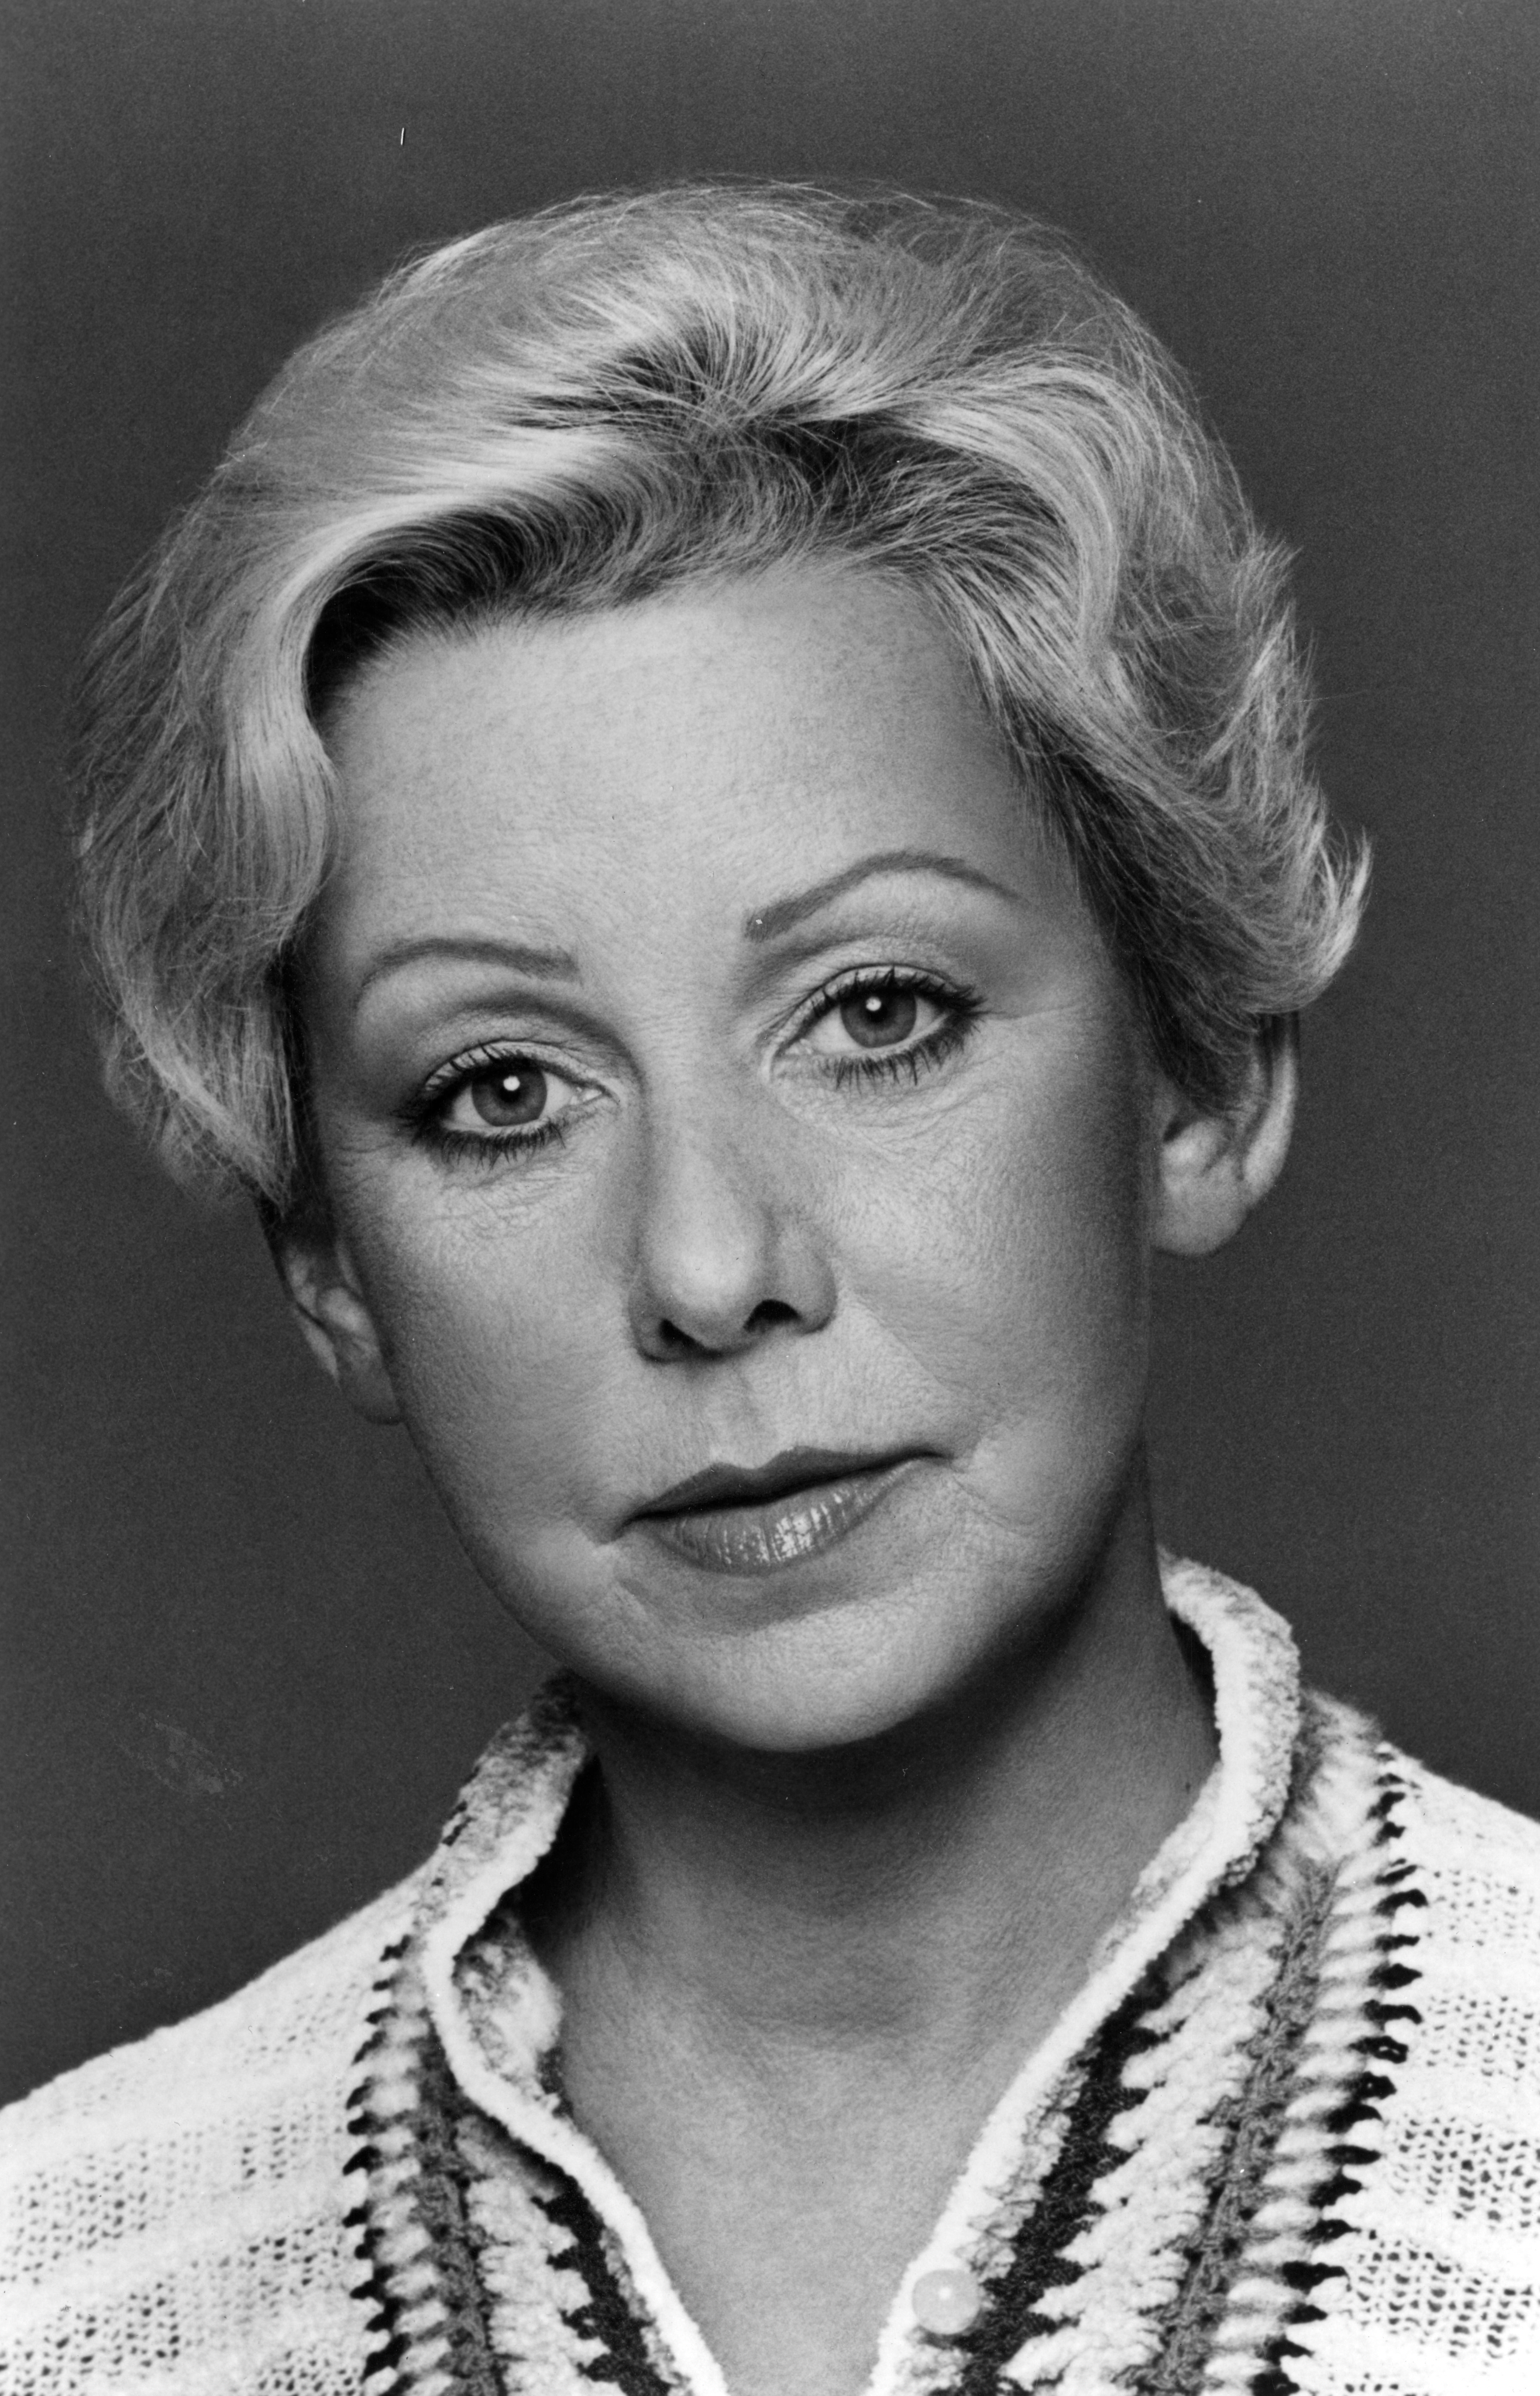 Portrait of American politician and mayor of Chicago Jane Byrne, early to mid 1980s.